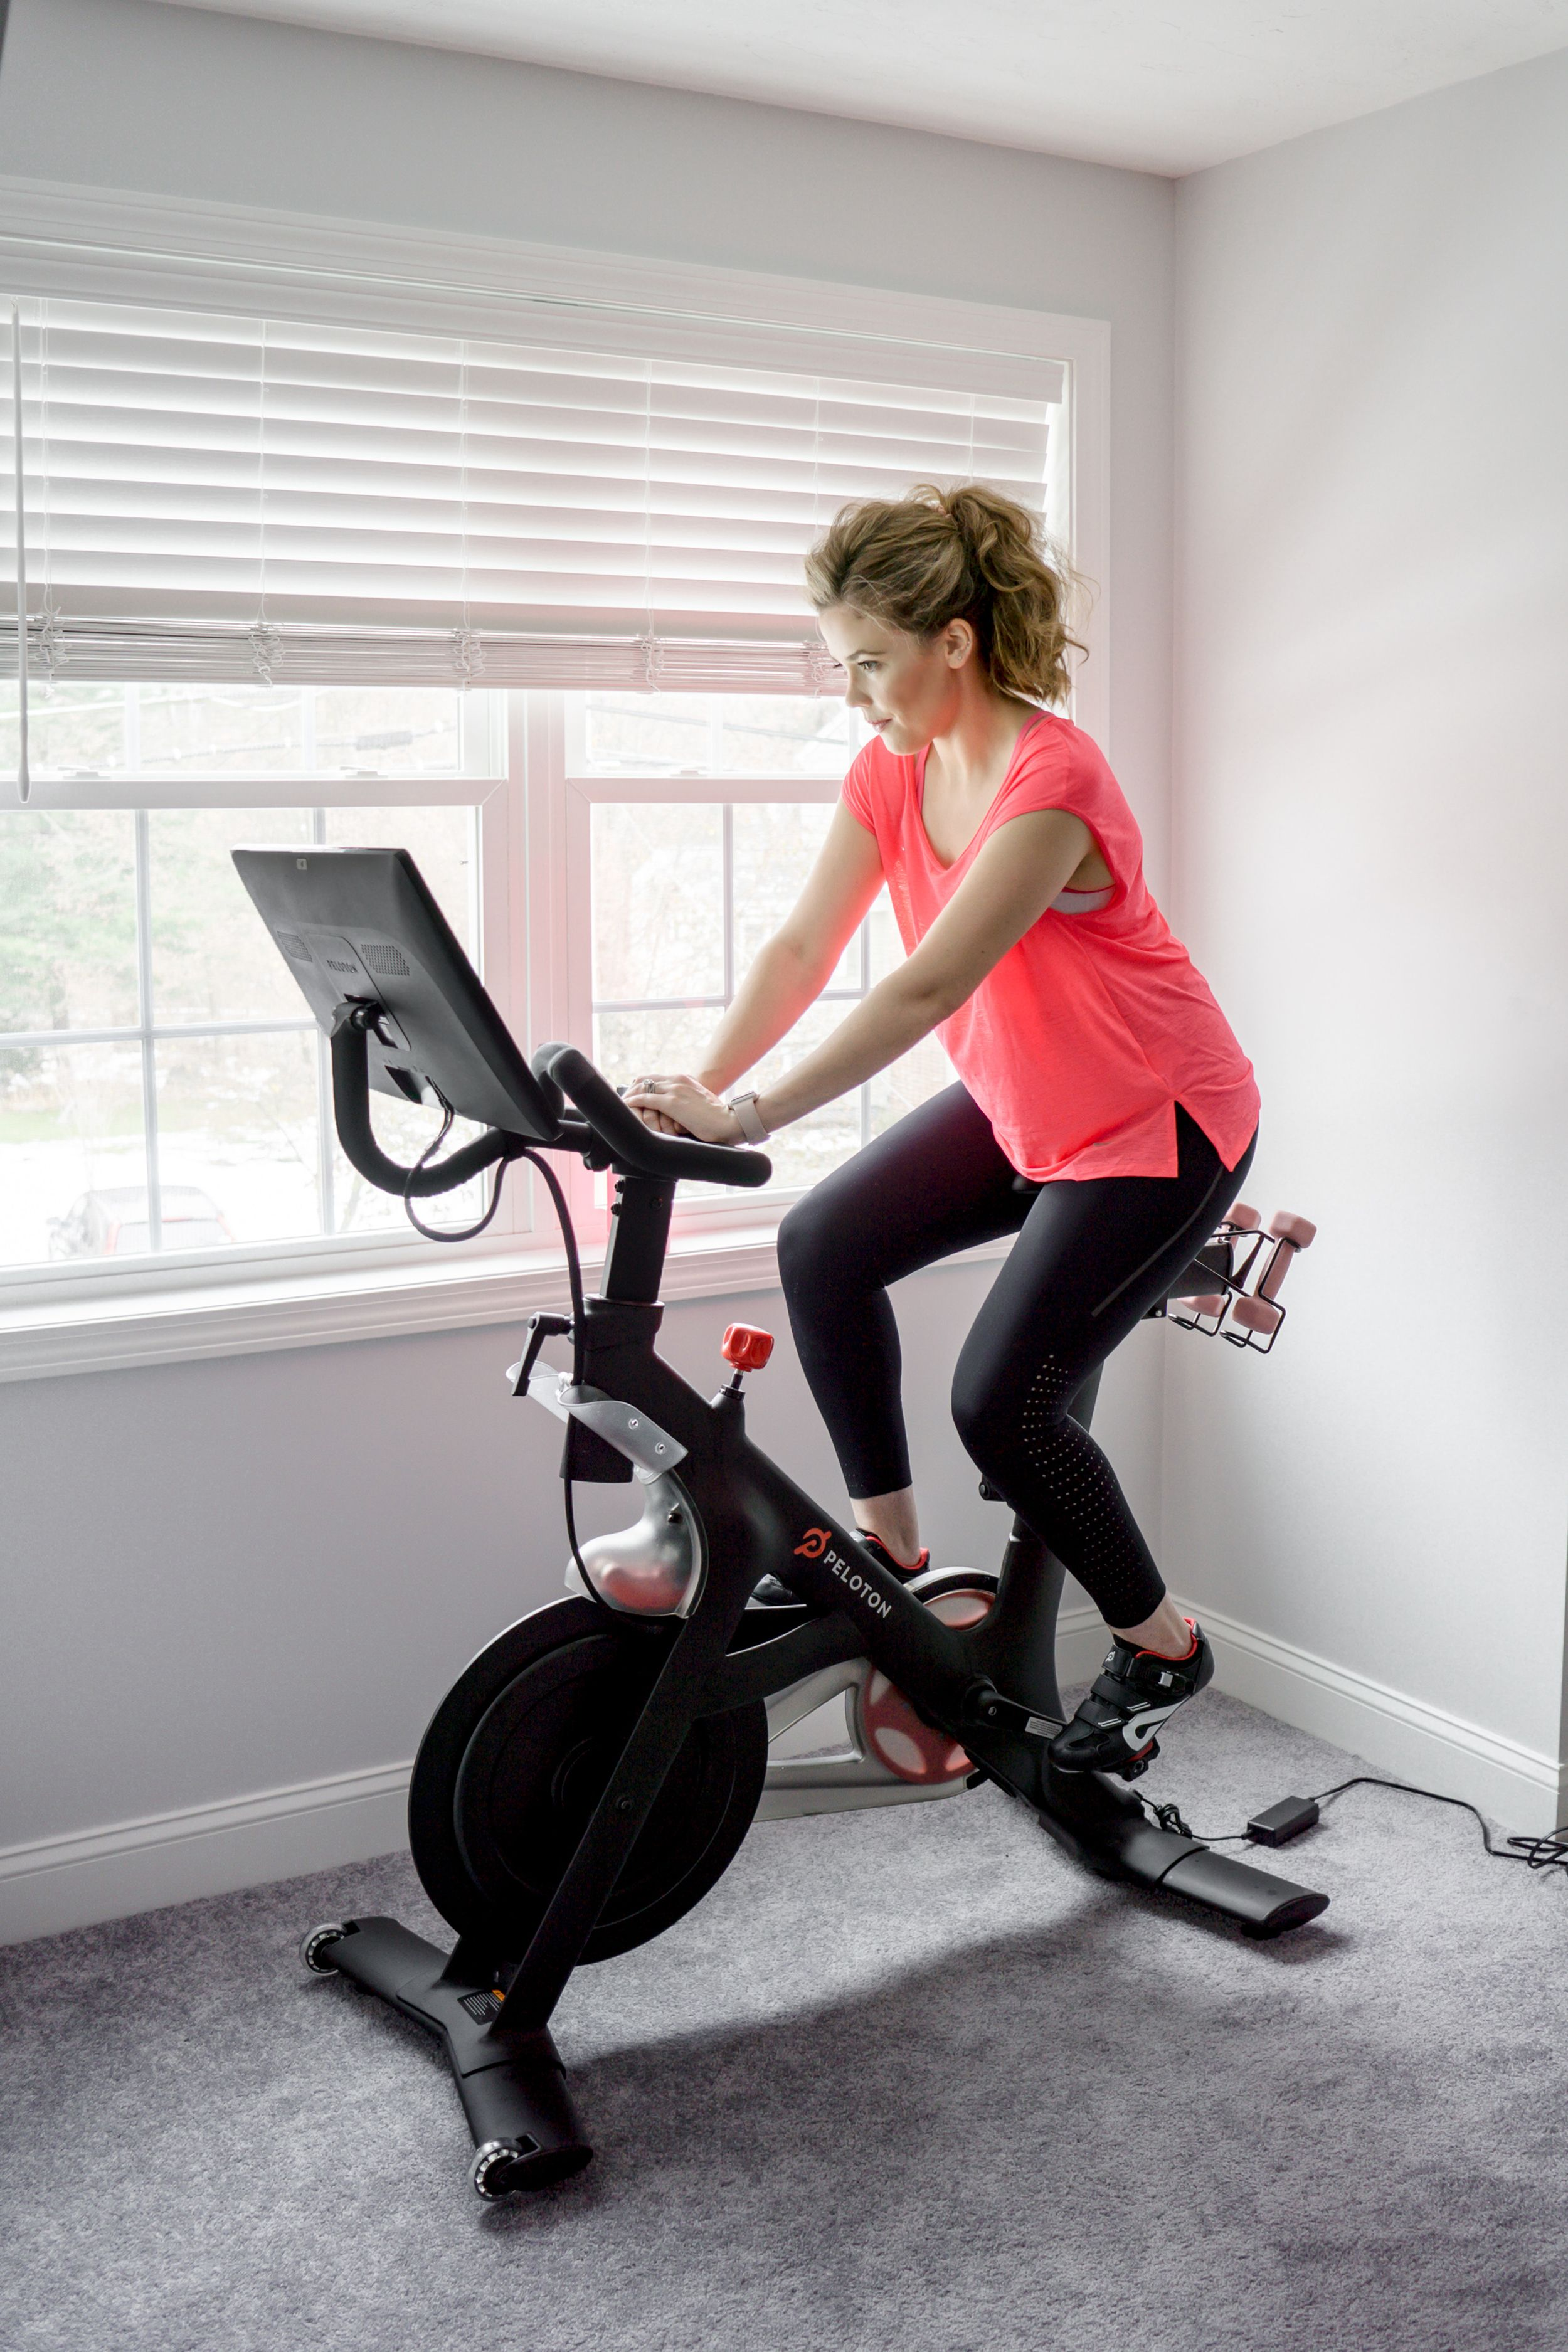 Image Result For Peloton Peloton Bike Biking Workout Peloton